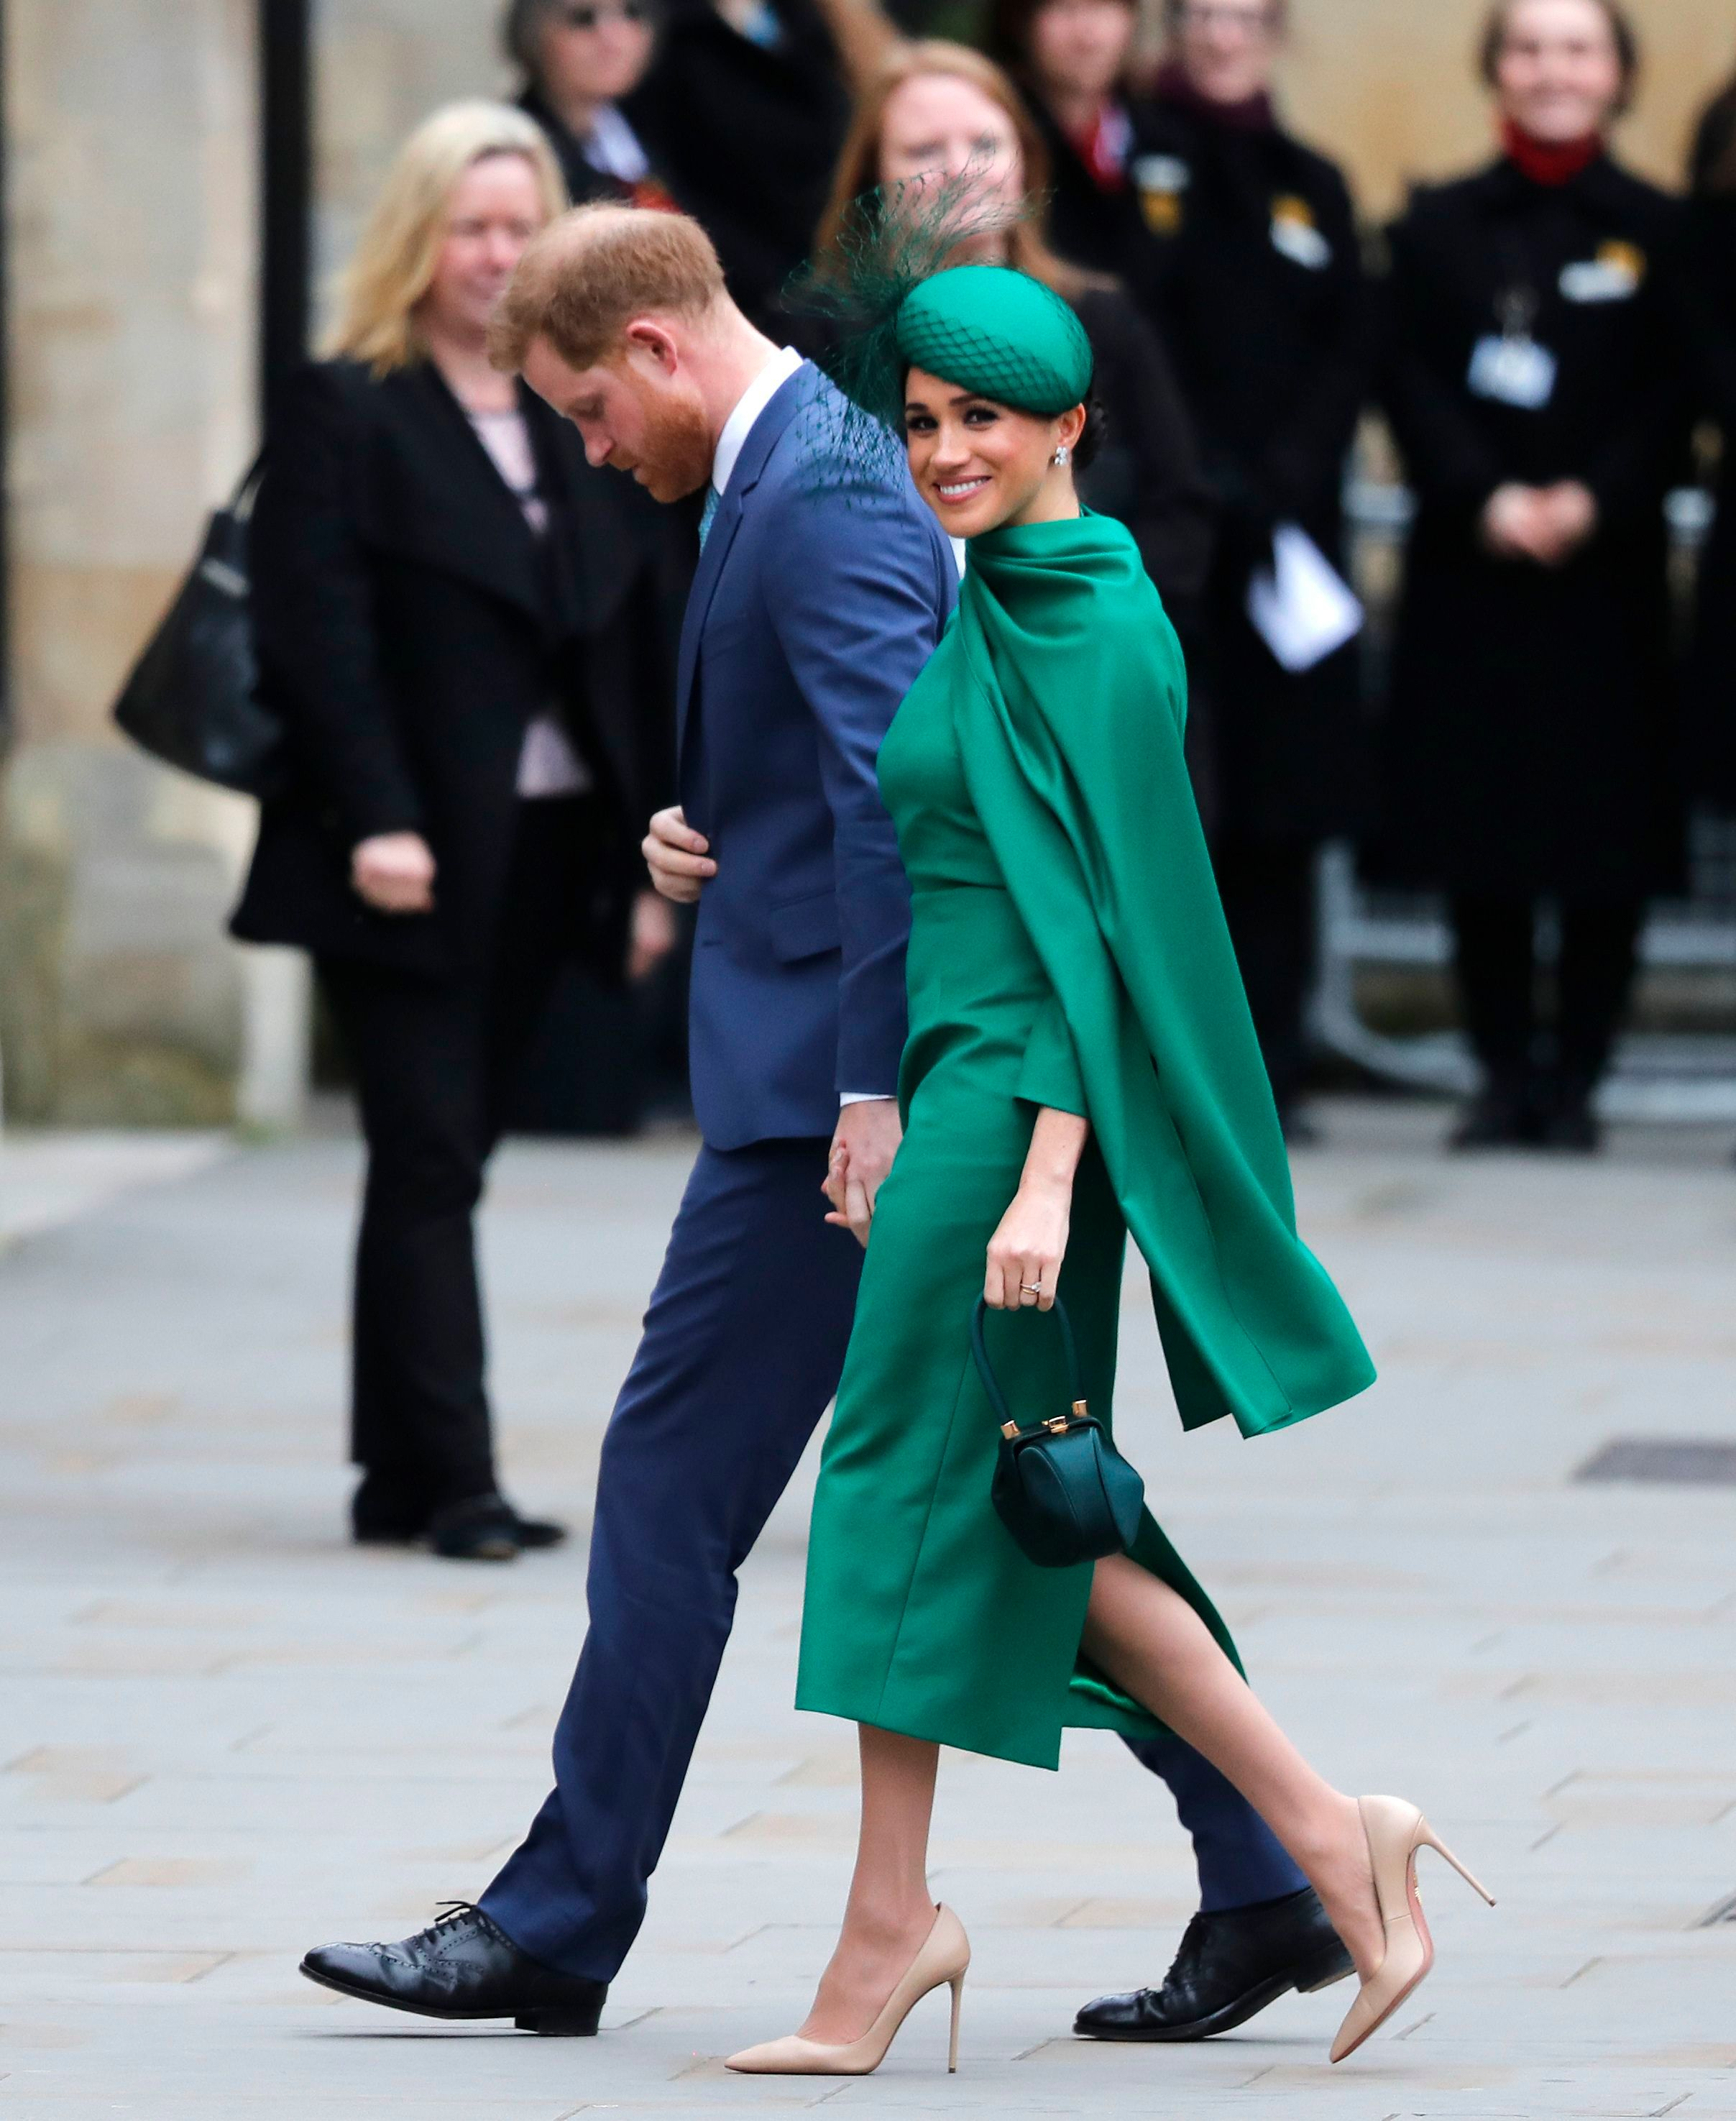 The Farewell Tour: Prince Harry, Meghan Markle Return to U.K.for Final Round of Official Visits